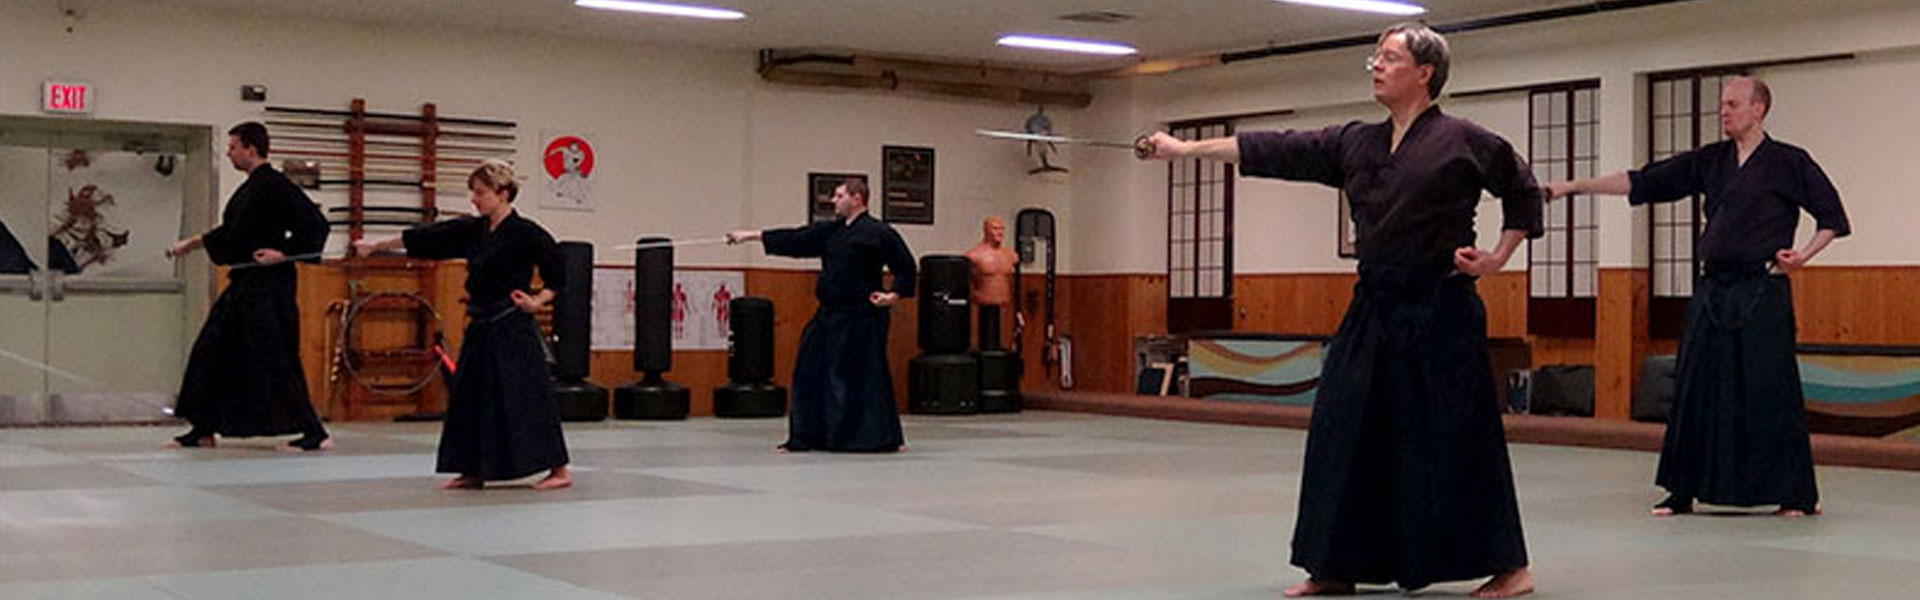 River of Life Martial Arts Center - Fort Washington Aiki Jujutsu